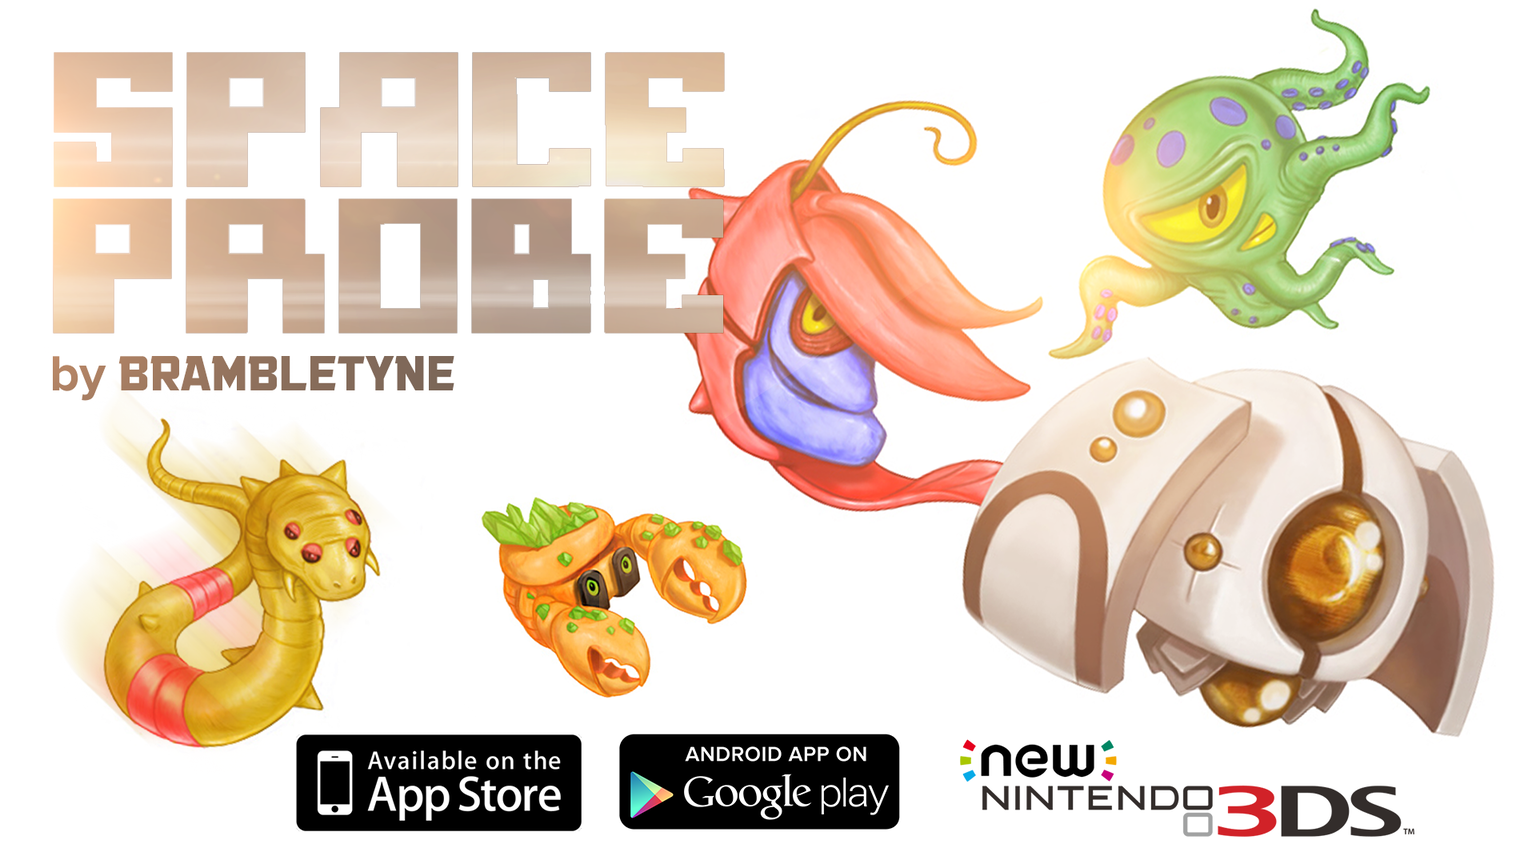 SPACE PROBE - A game for iOS, Android + New Nintendo 3DS ...